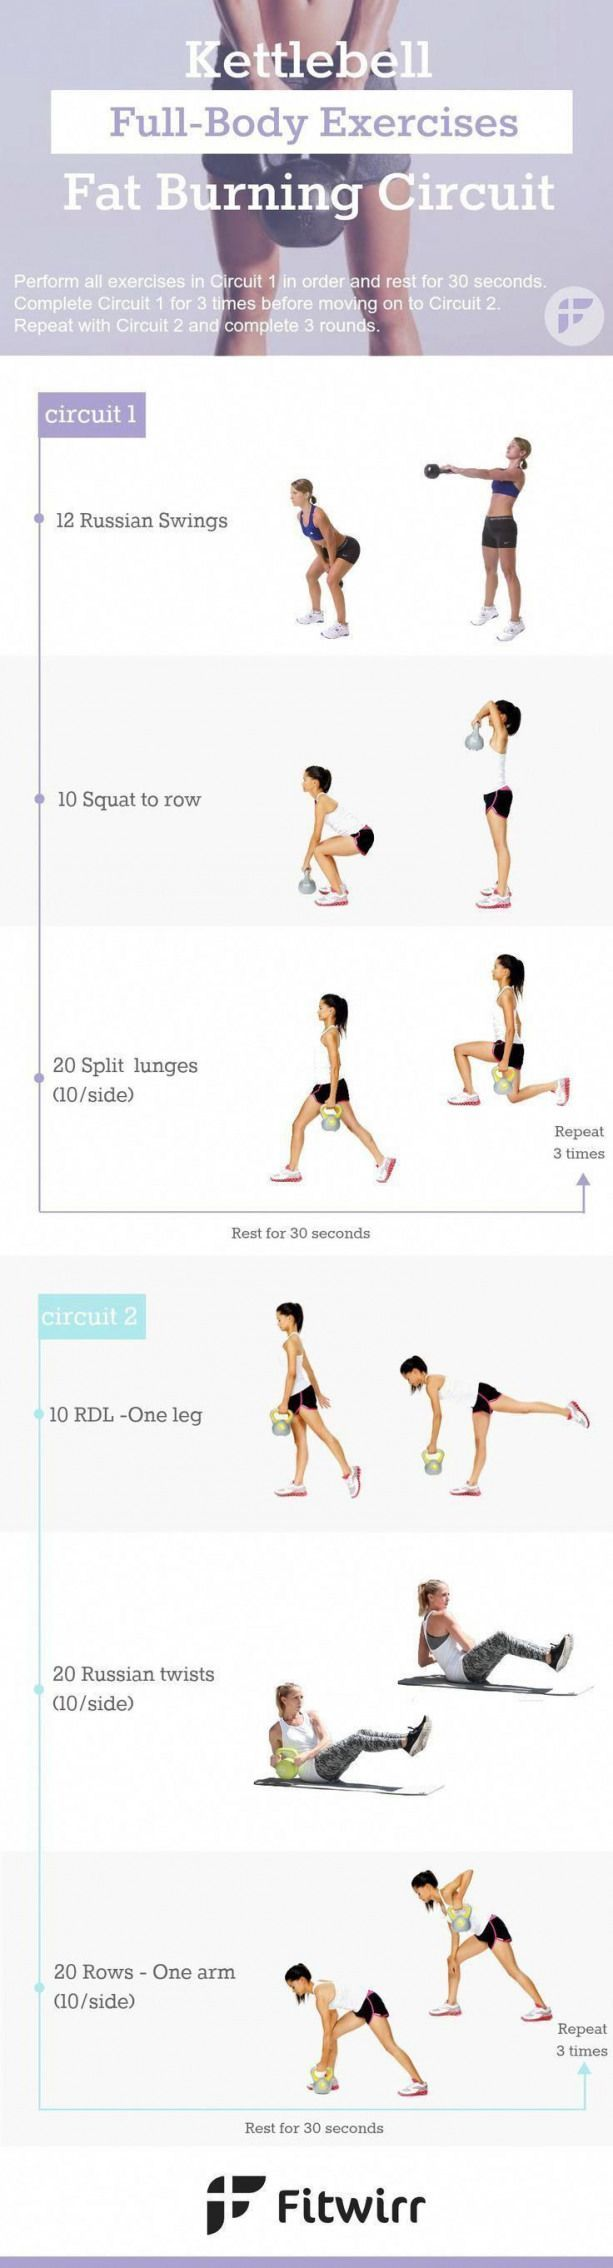 Fitness plans for healthy and active living - Get fit plan note 6391459310 - Not... -  Fitness plans...